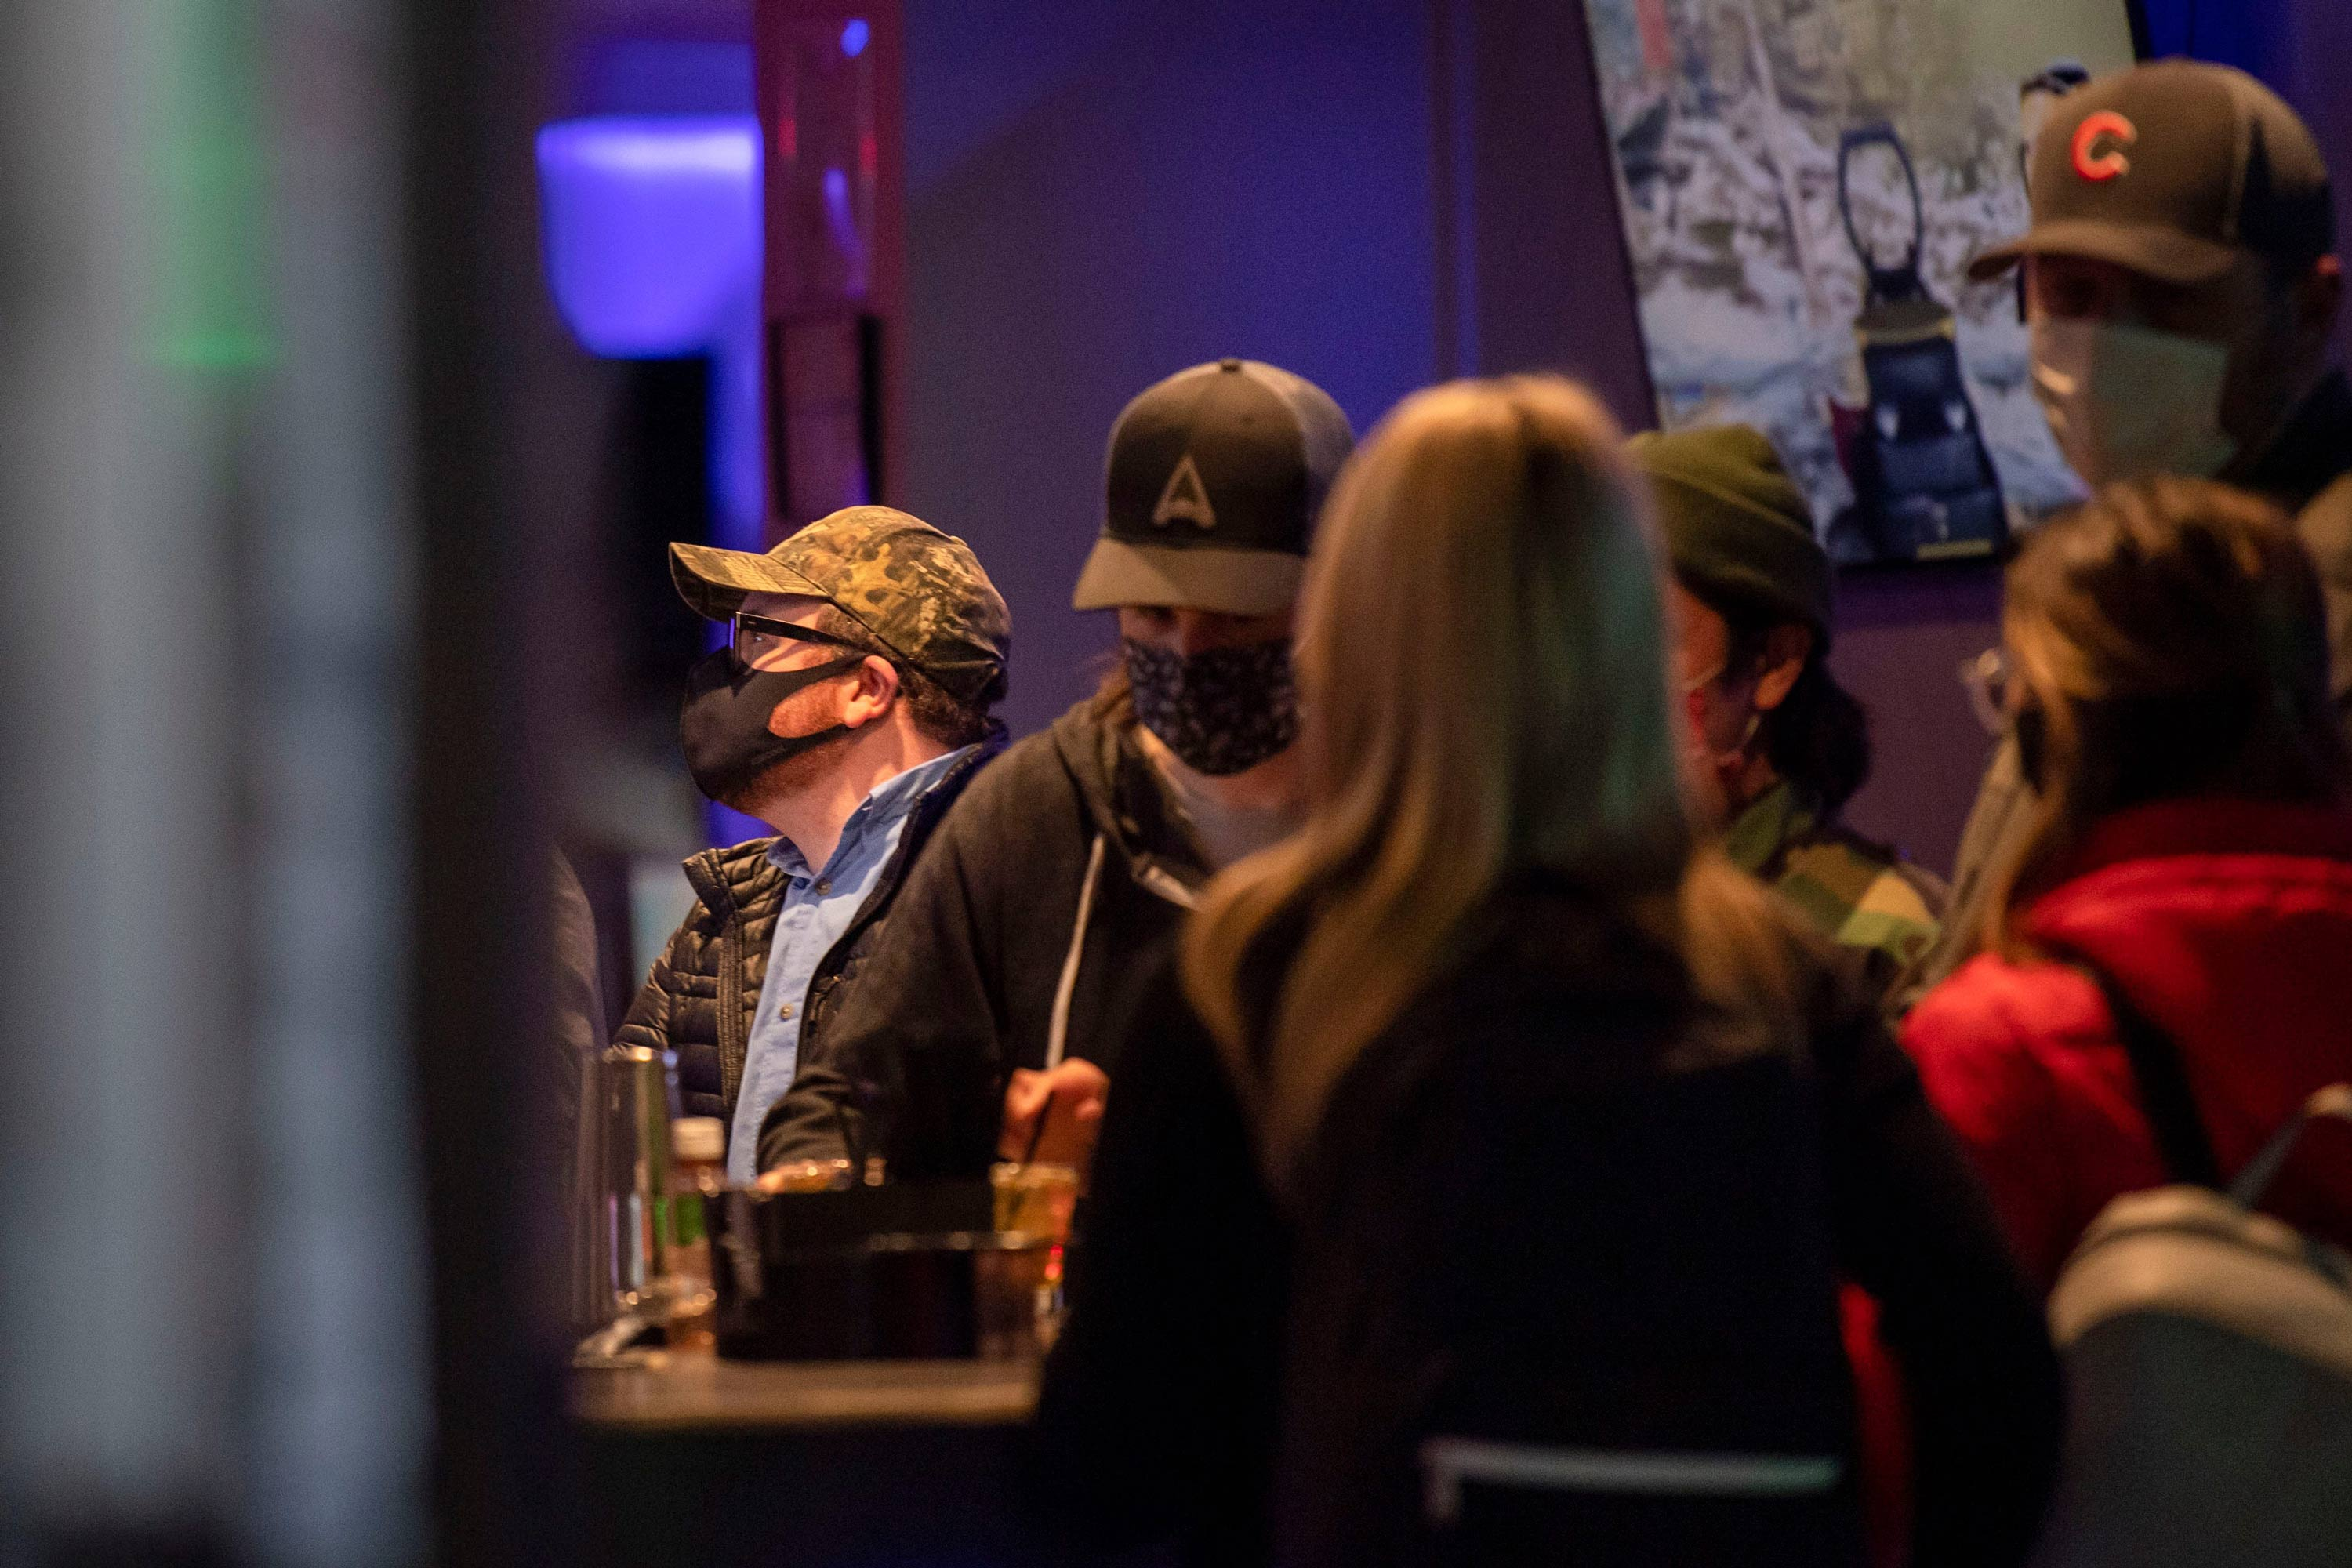 People stand in Valhalla Esports Lounge on March 2 in Austin, Texas.